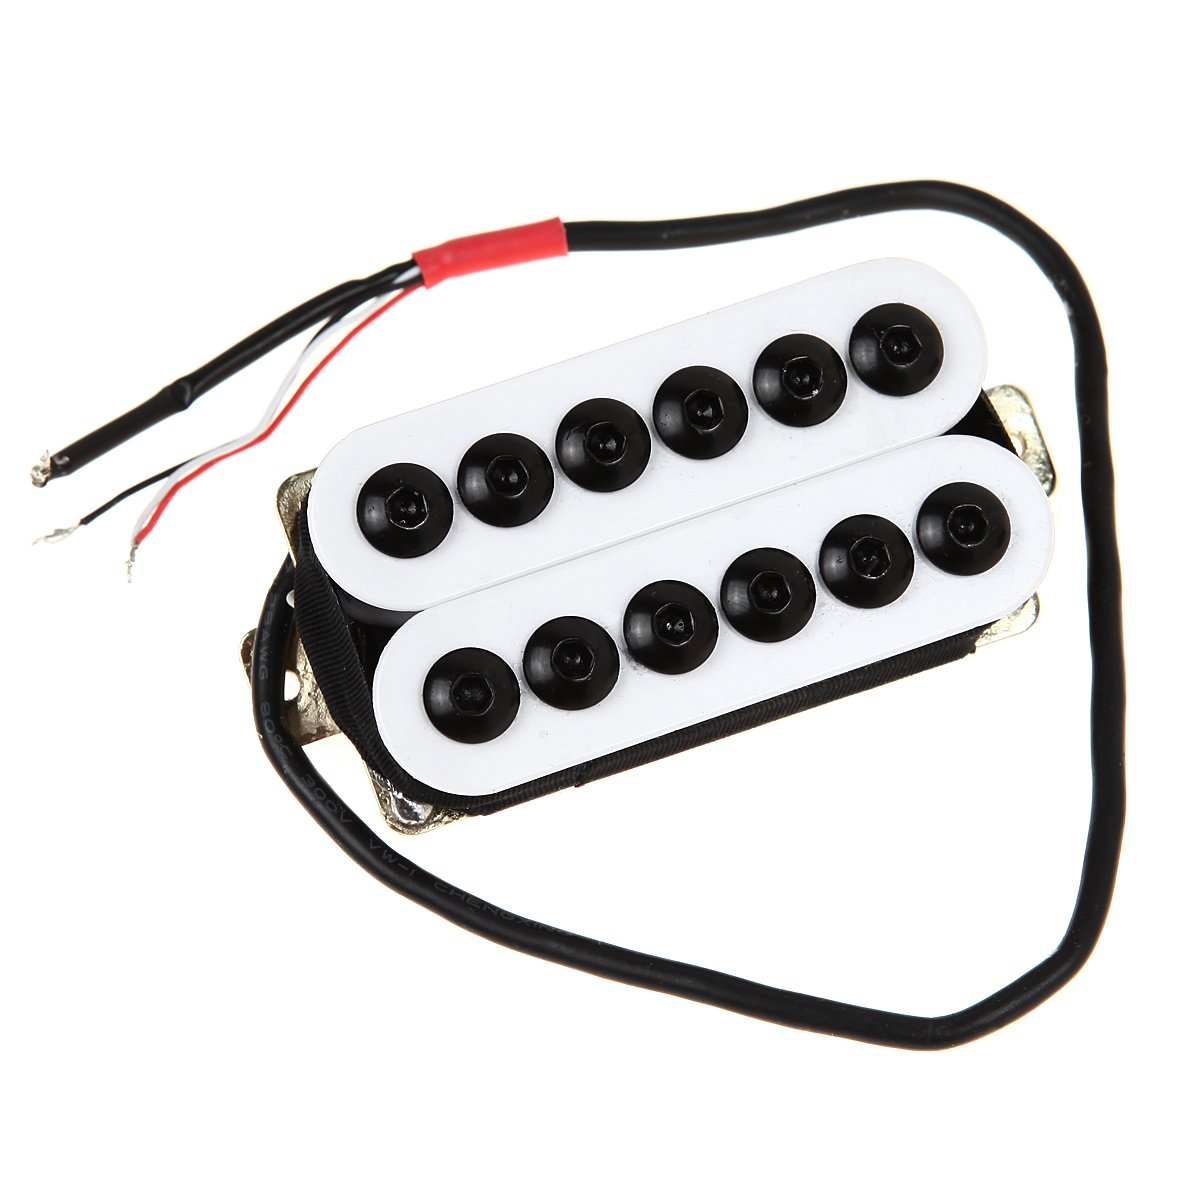 Kmise Mi0343 Bridge Neck Guitar Humbucker Pickup Set Gibson Wiring Color Code Invader Style White Musical Instruments